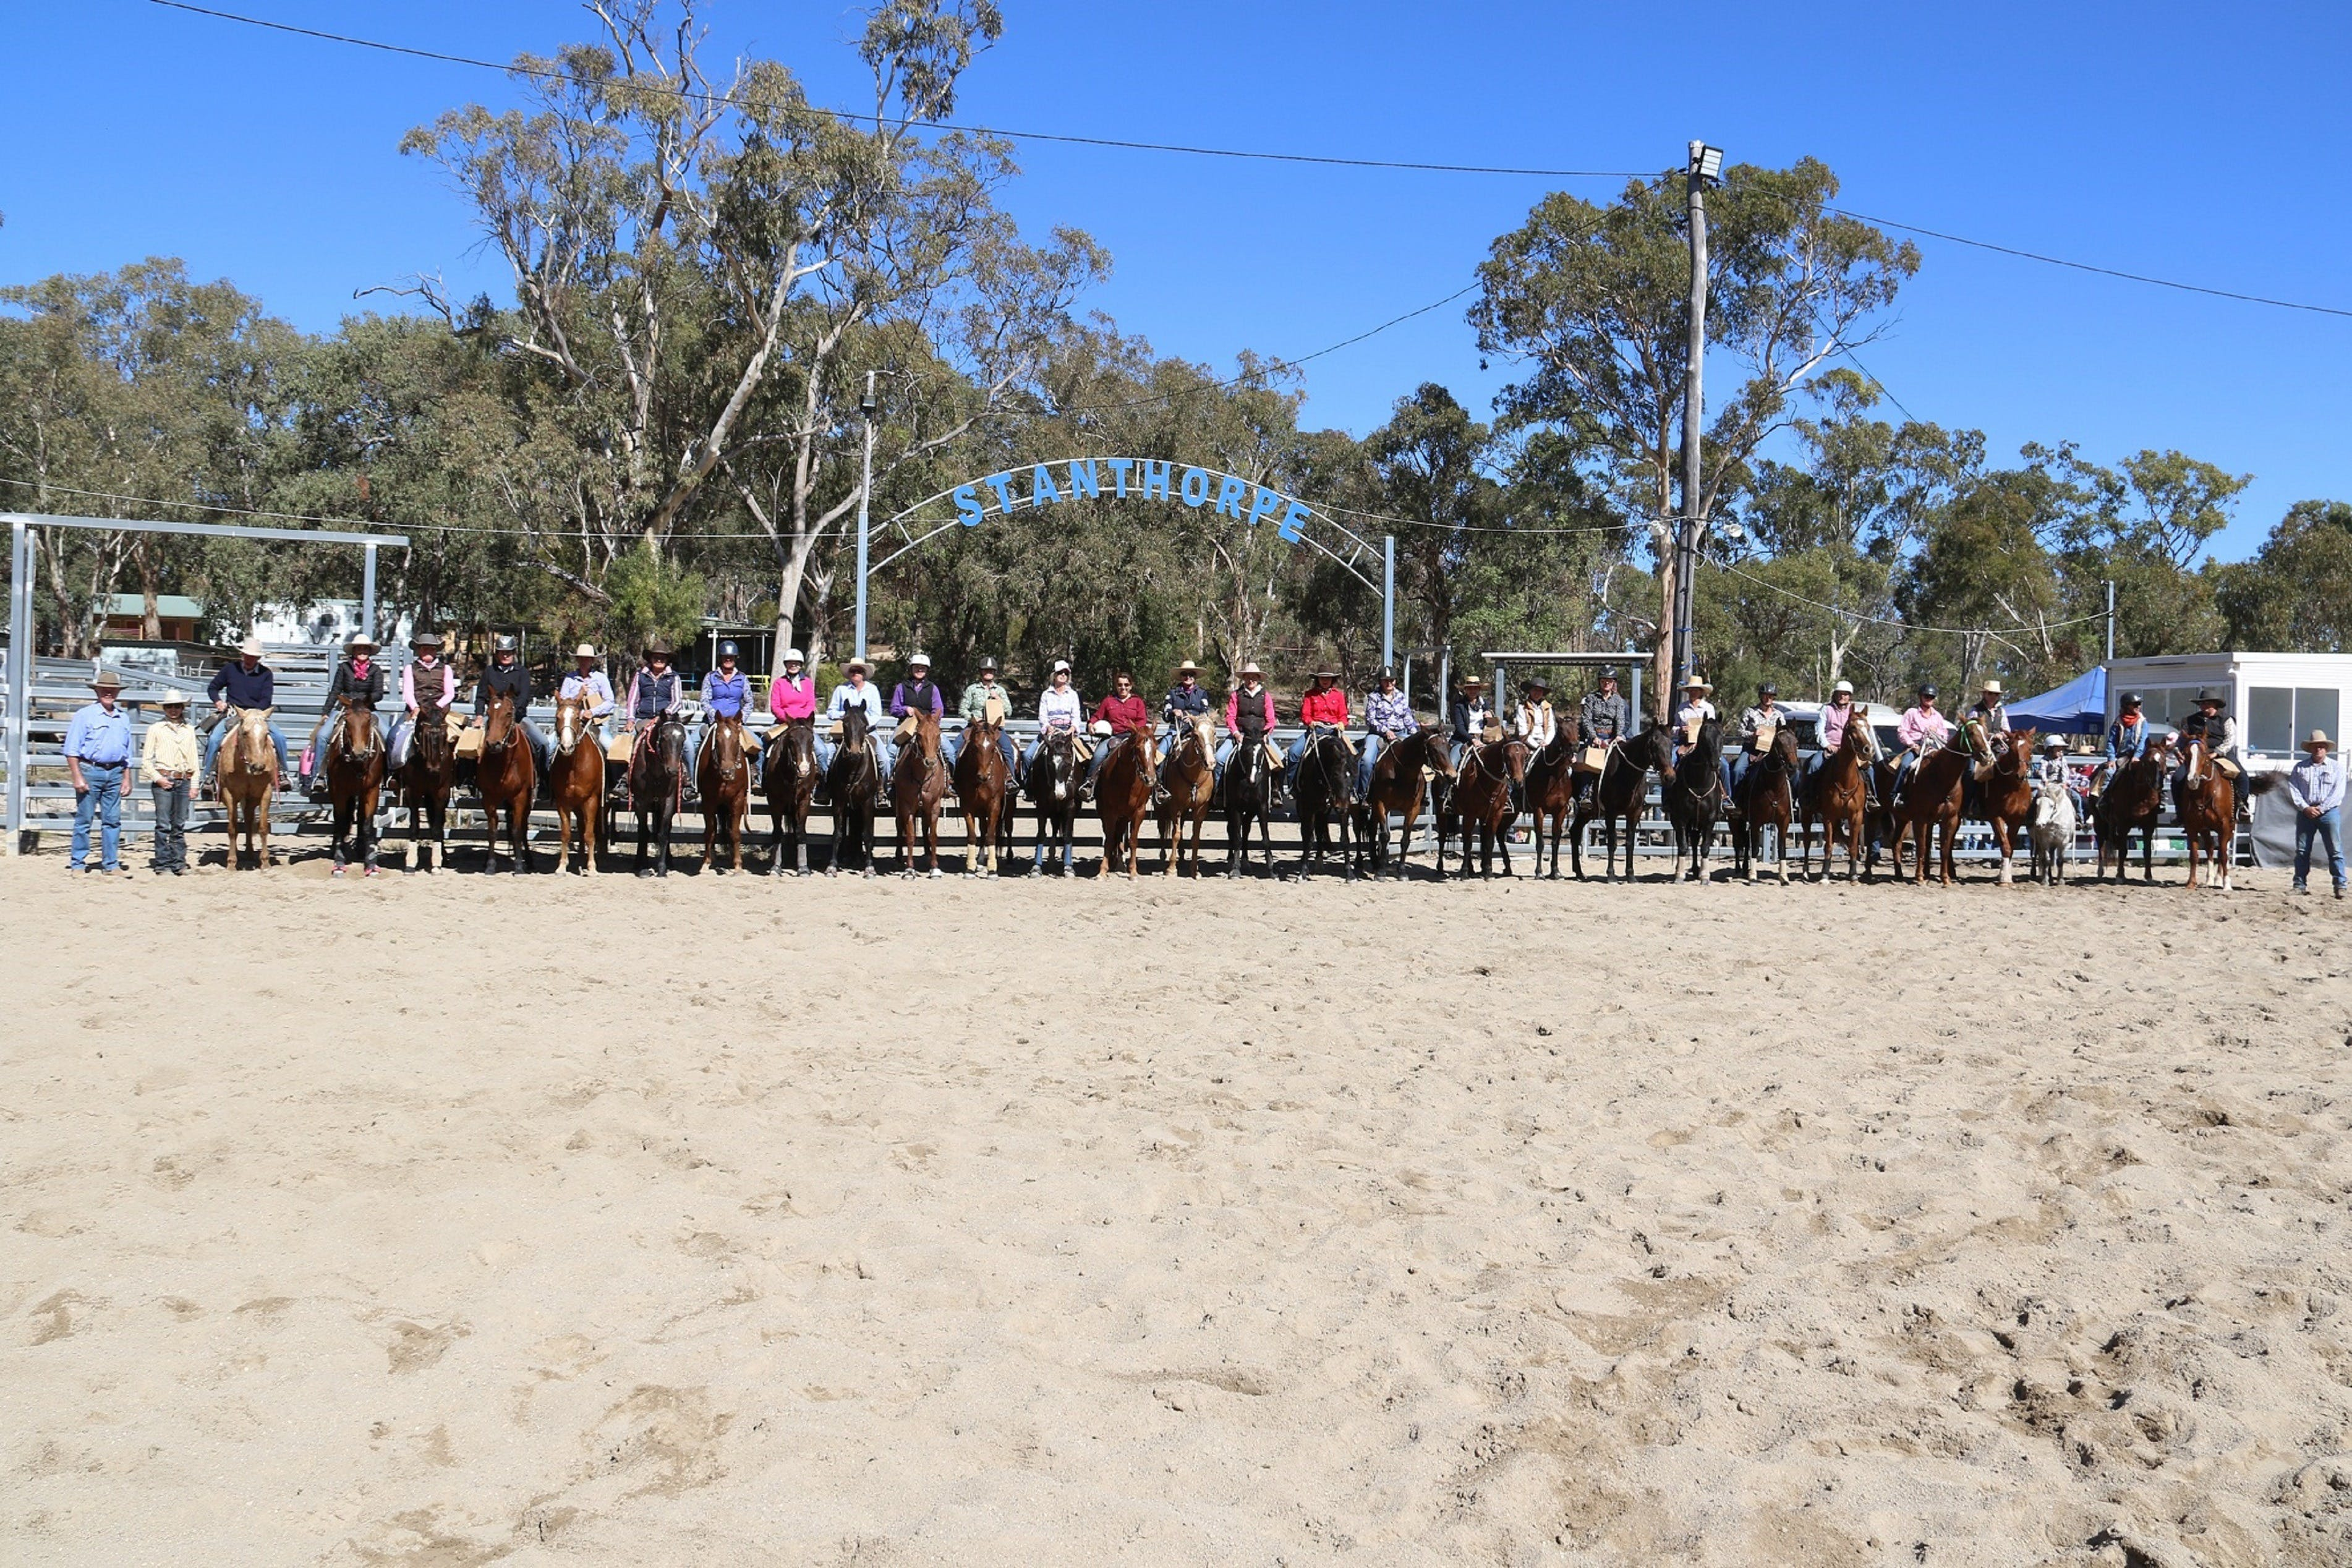 Australian Campdraft Association National Finals Campdraft 2021 - Wagga Wagga Accommodation